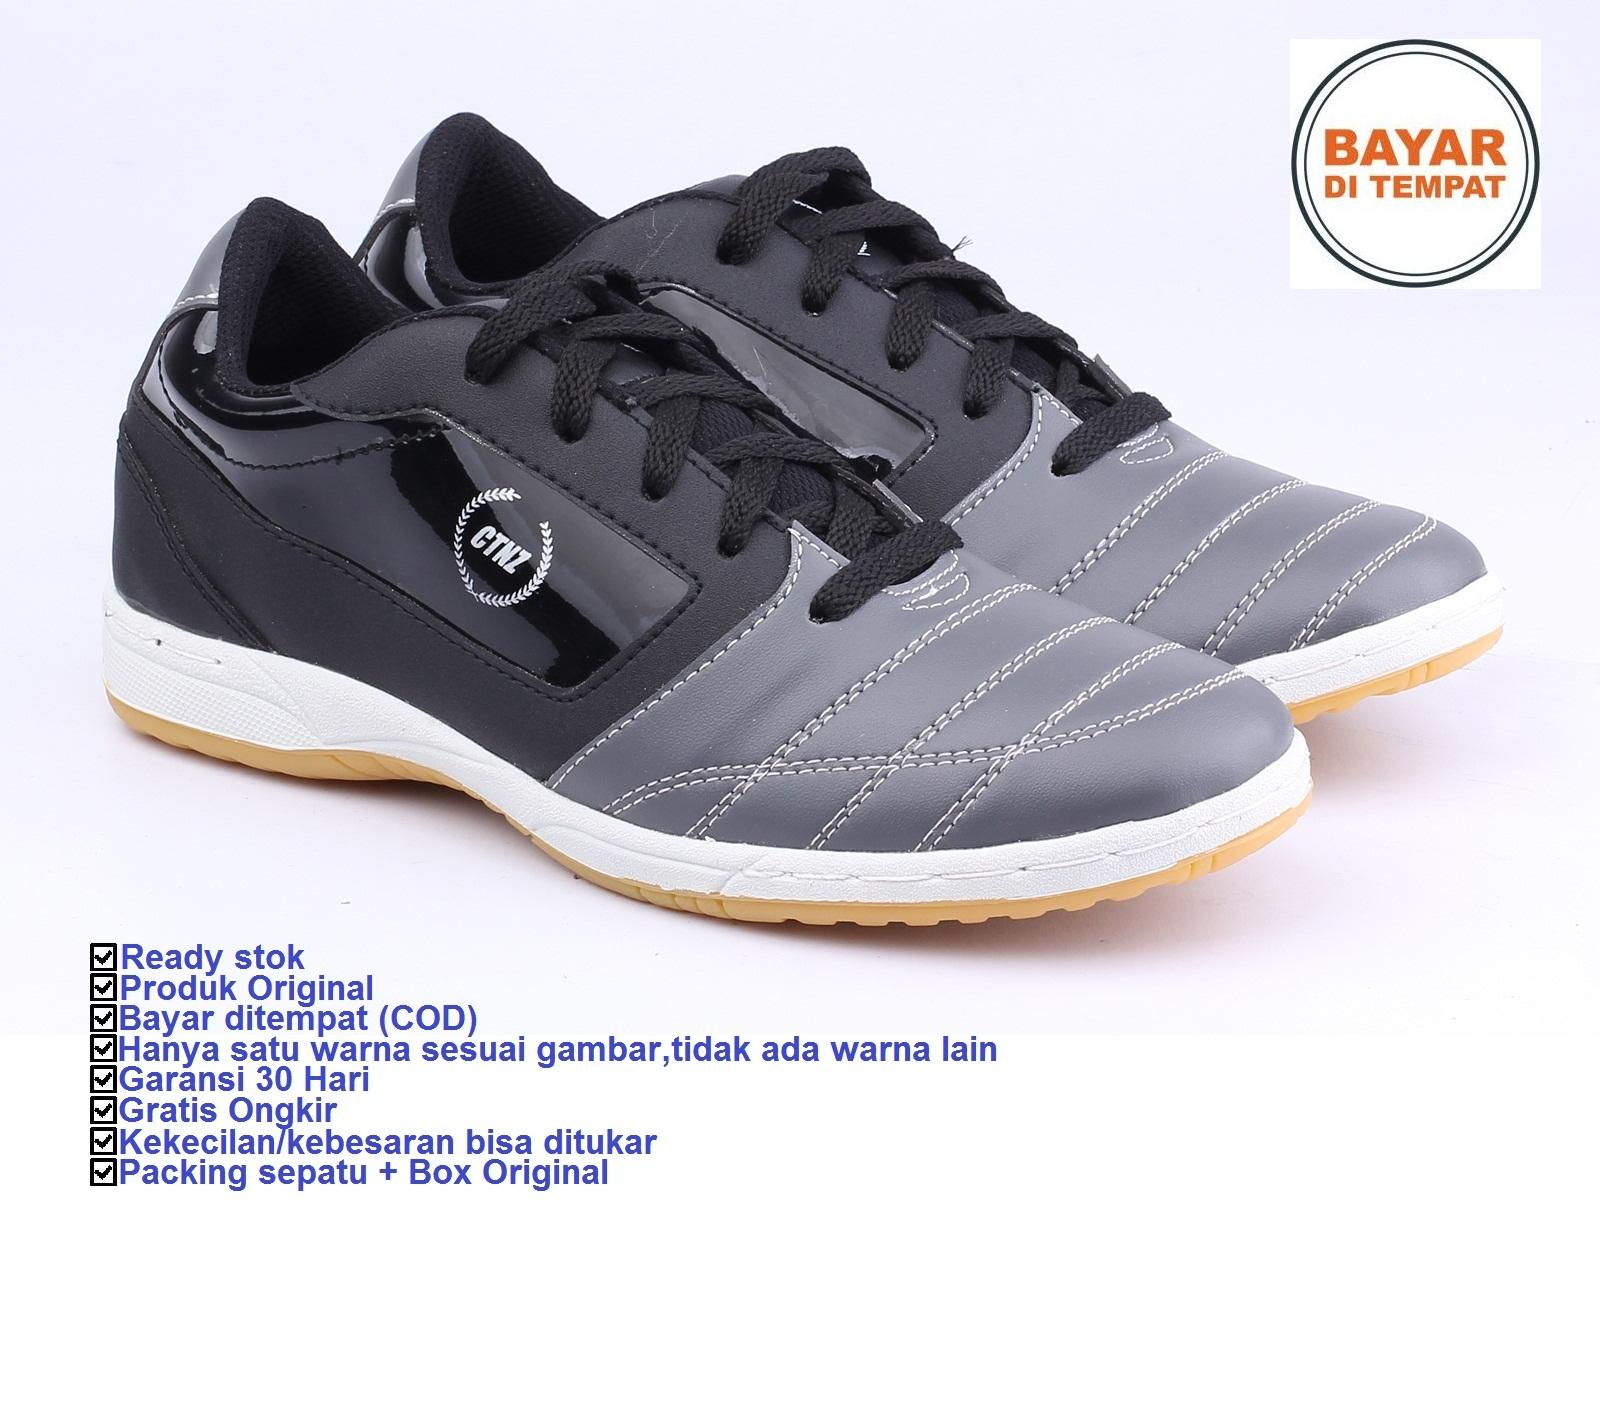 Catenzo Sepatu Futsal Bola Origin Synth DY039 Trendy Best Seller - Hitam